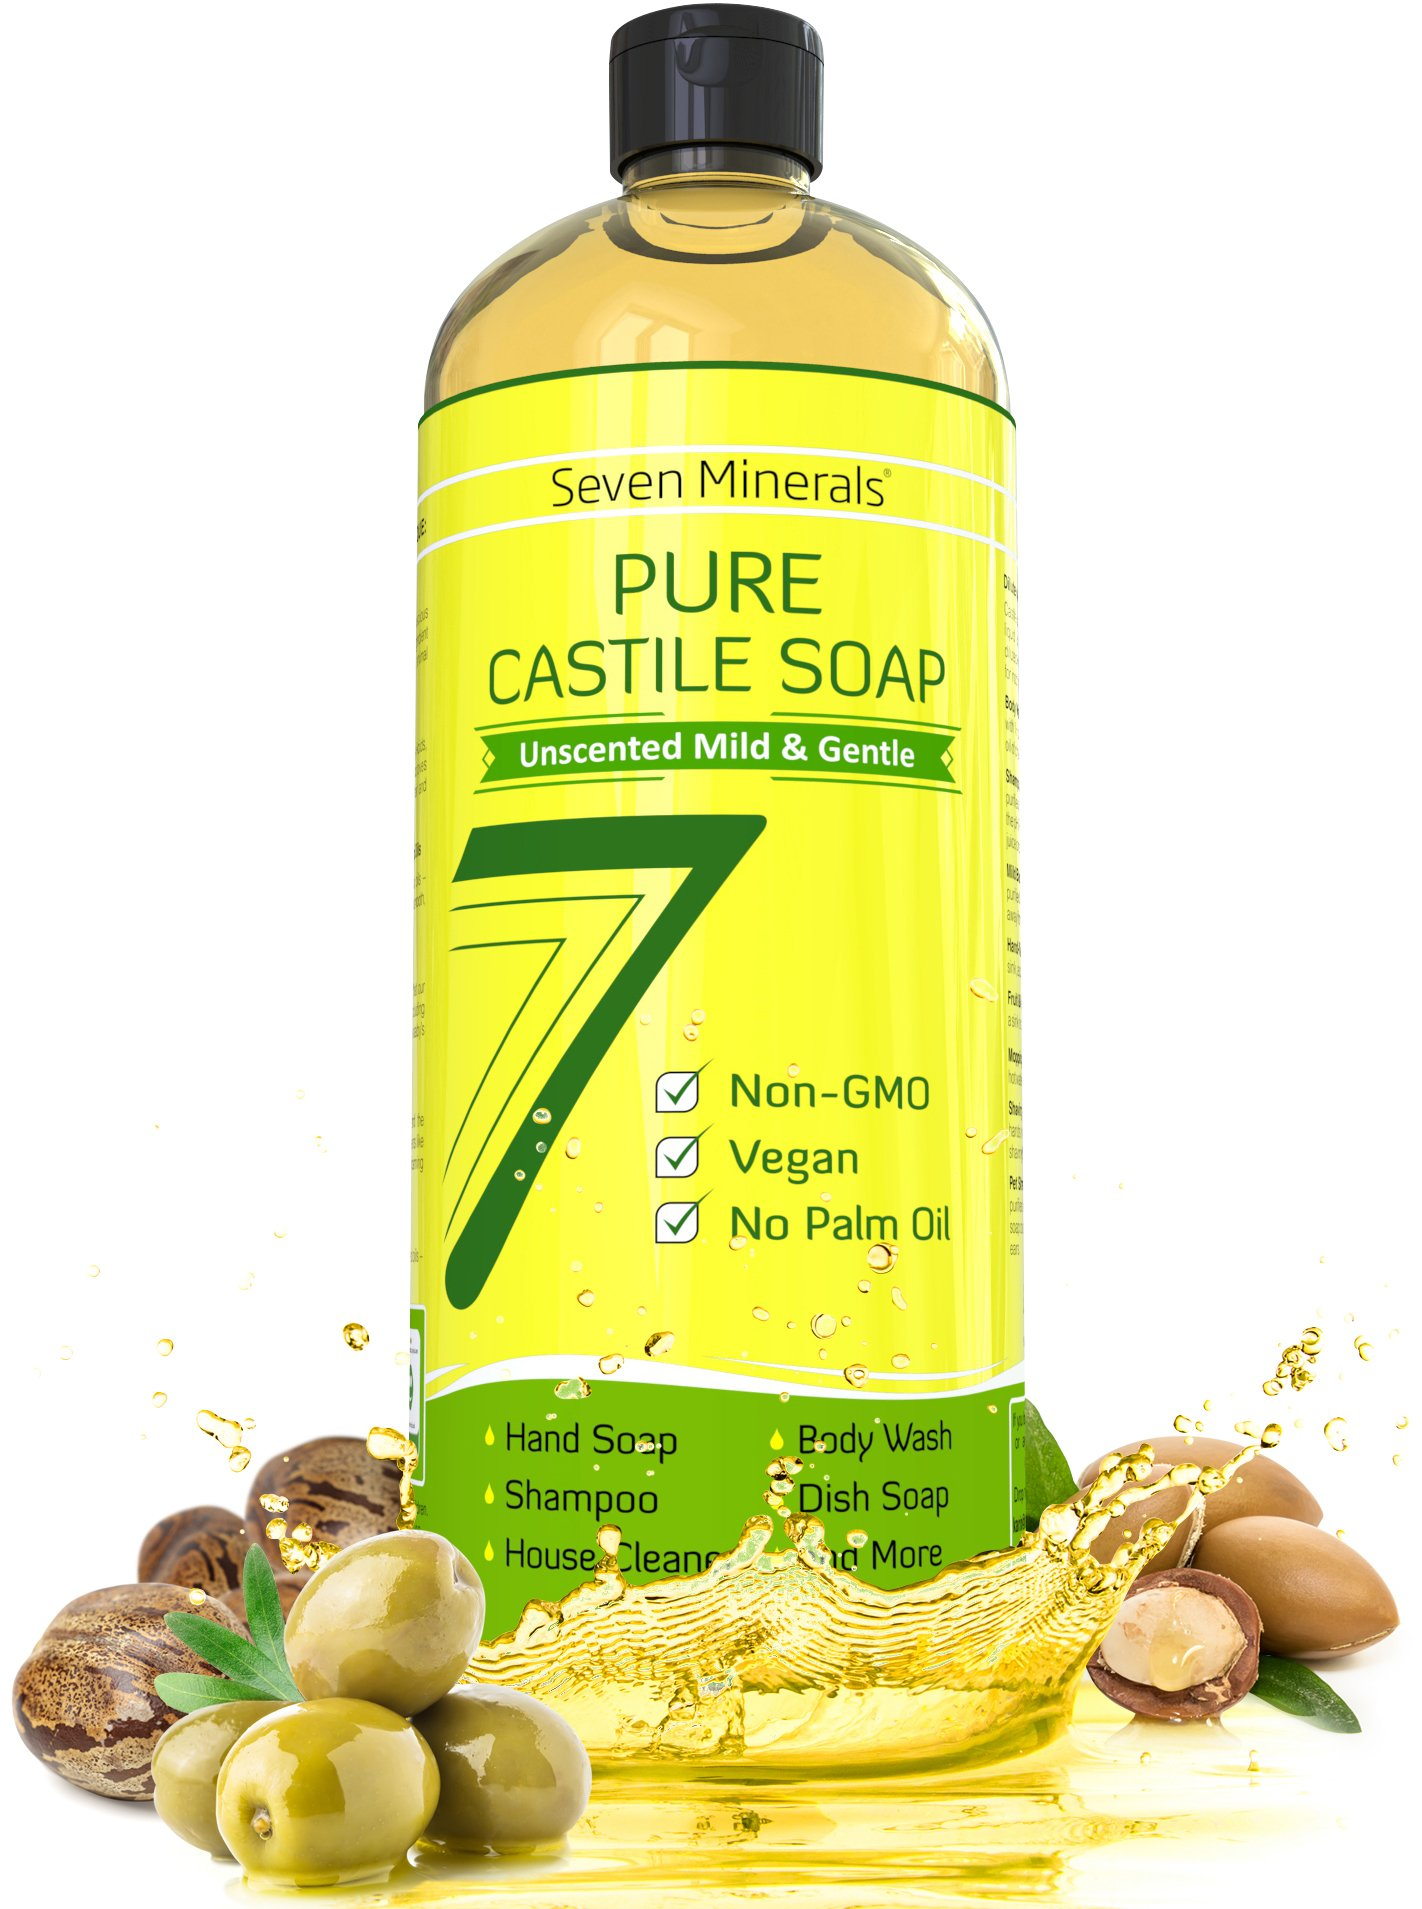 Pure Castile Soap 33.8 fl oz - No Palm Oil, GMO-Free - Unscented Mild & Gentle Liquid Soap For Sensitive Skin & Baby Wash - All Natural Vegan Formula with Organic Carrier Oils by Seven Minerals